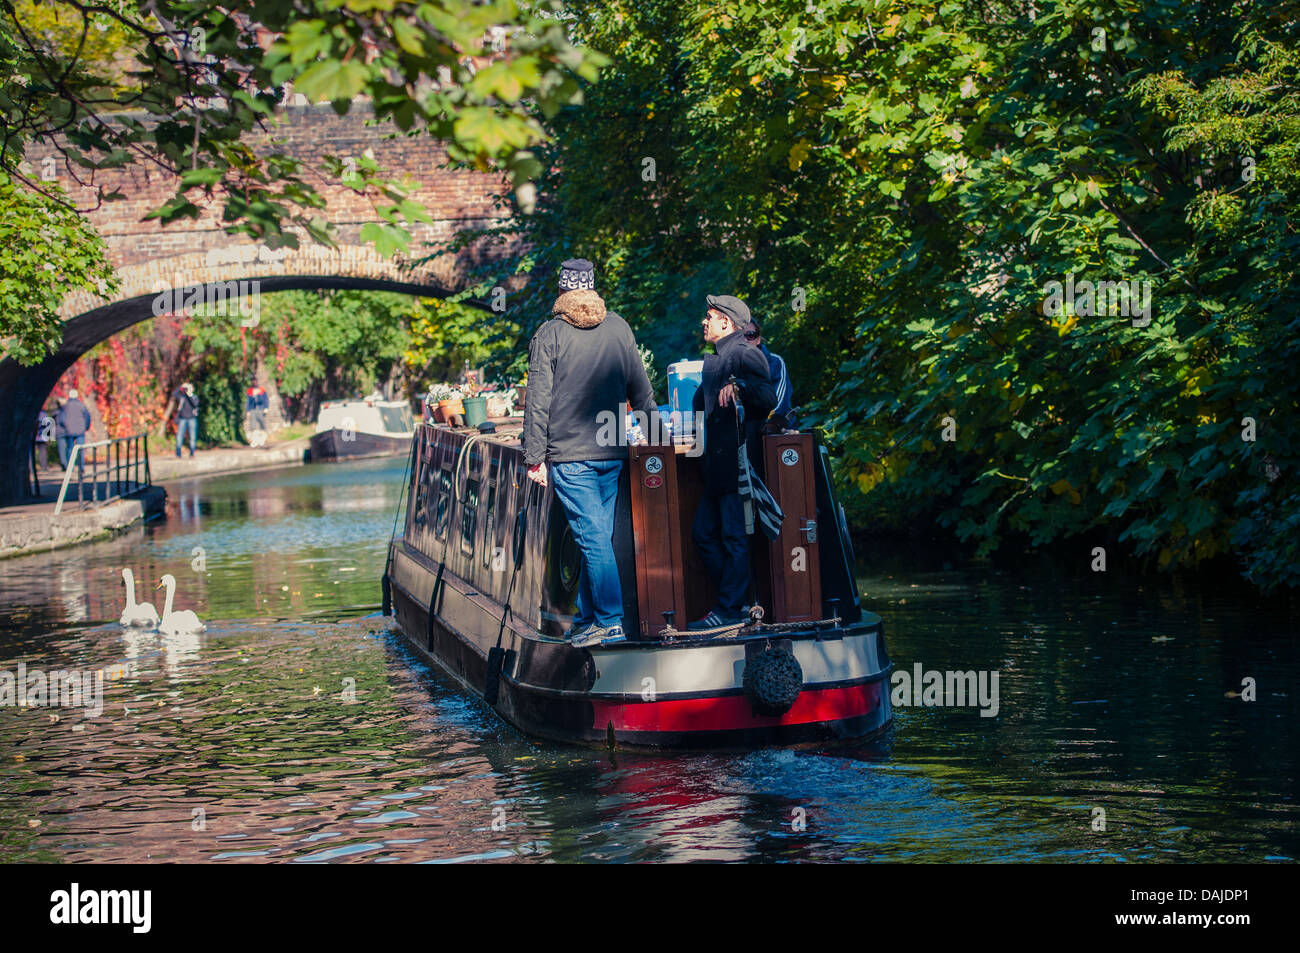 Longboat on Regent's canal, London - Stock Image